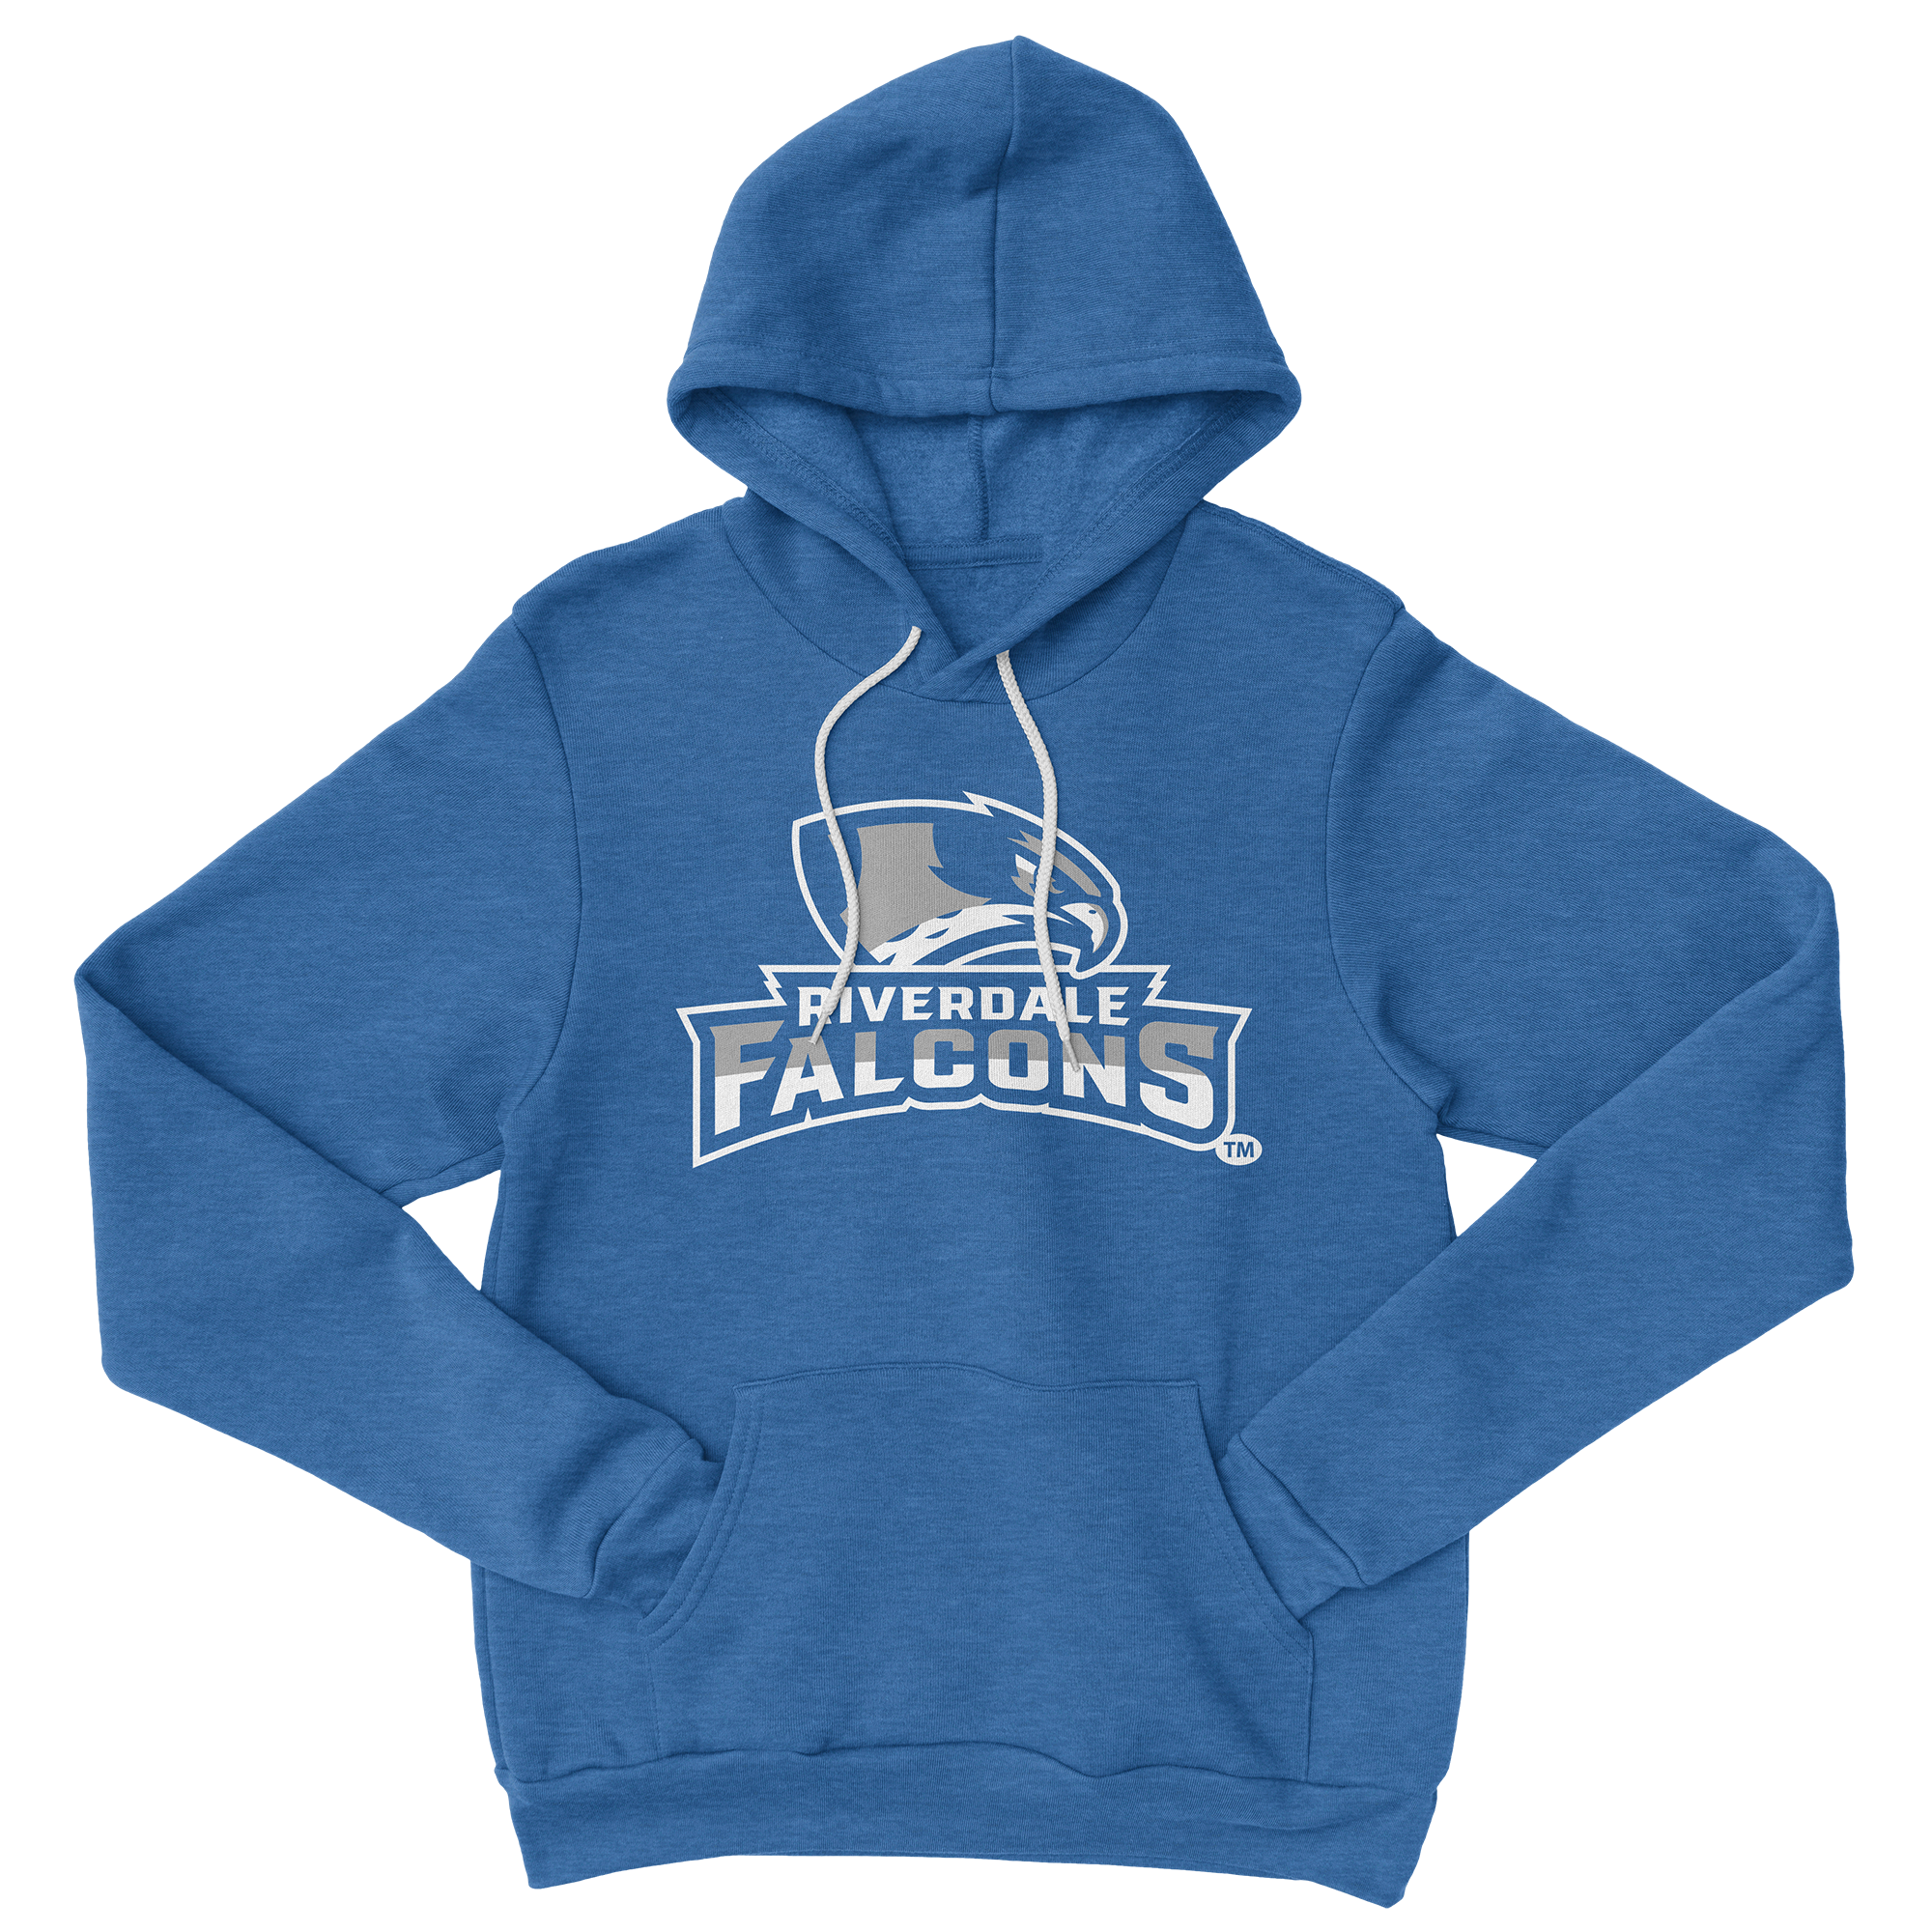 Riverdale Falcons Logo Pullover Hoodie